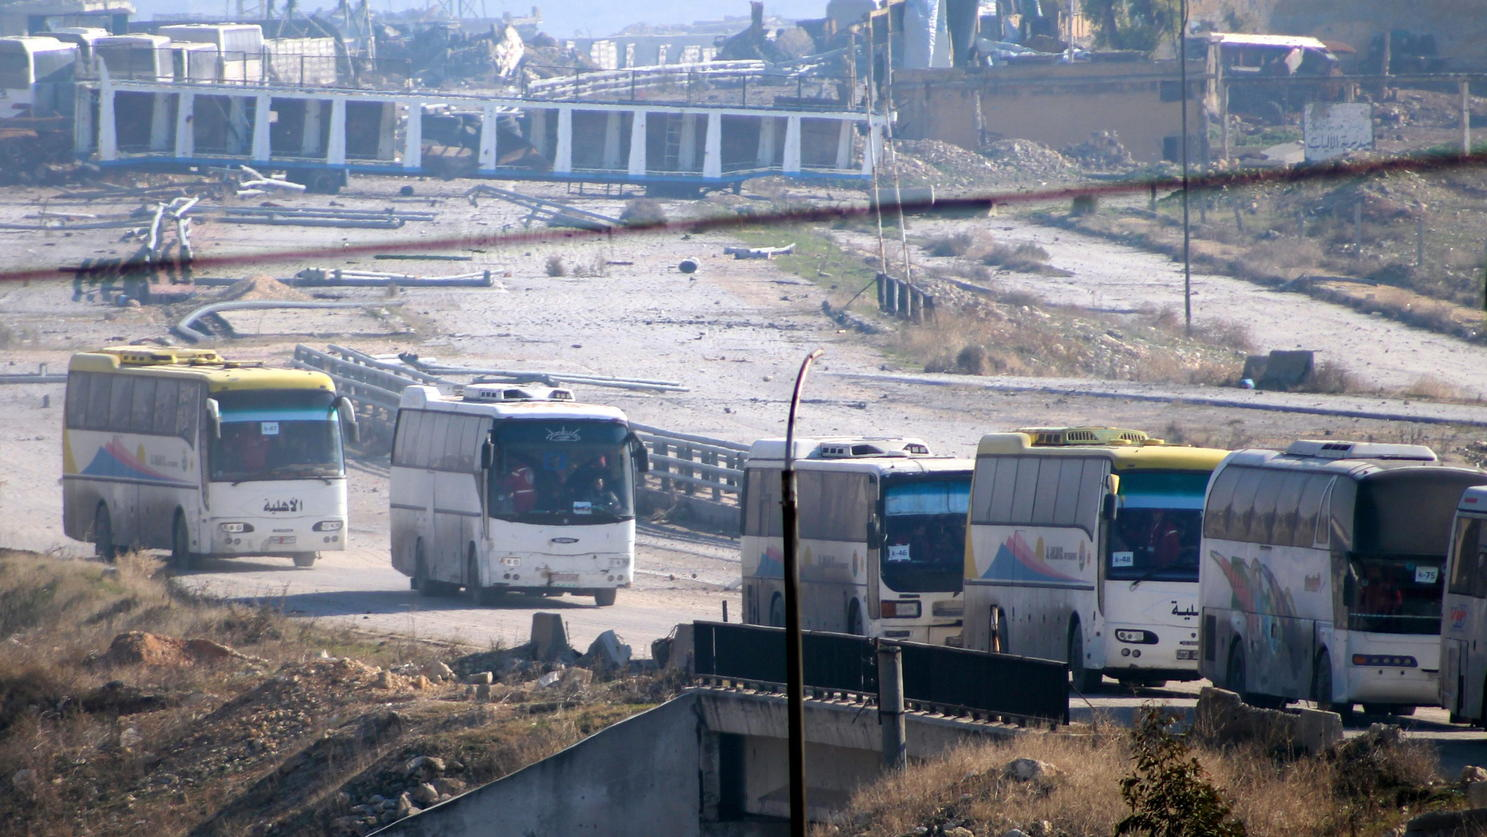 epa05682207 Buses carrying a group of fighters and their families leave eastern neighborhoods of Aleppo, Syria, 19 December 2016. Reports state at least 4,500 people have left government-besieged areas in the northern Syrian city of Aleppo since the